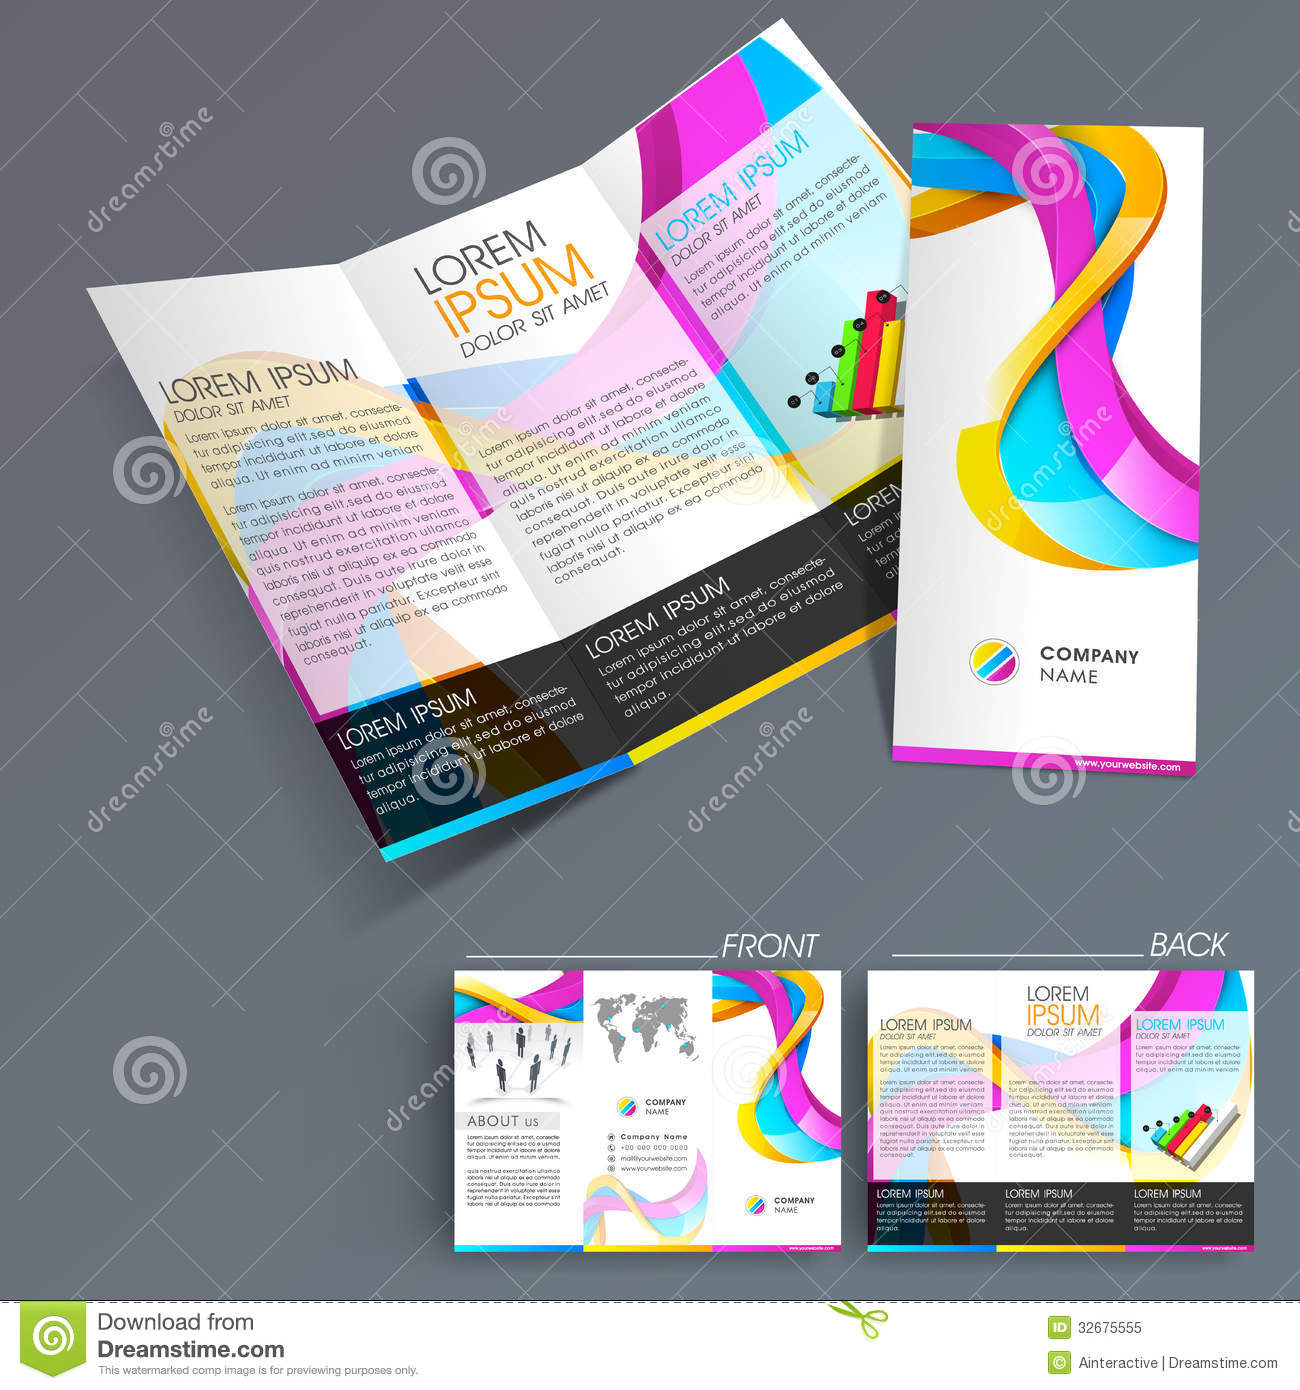 Business flyers printing ceriunicaasl business flyers printing maxwellsz